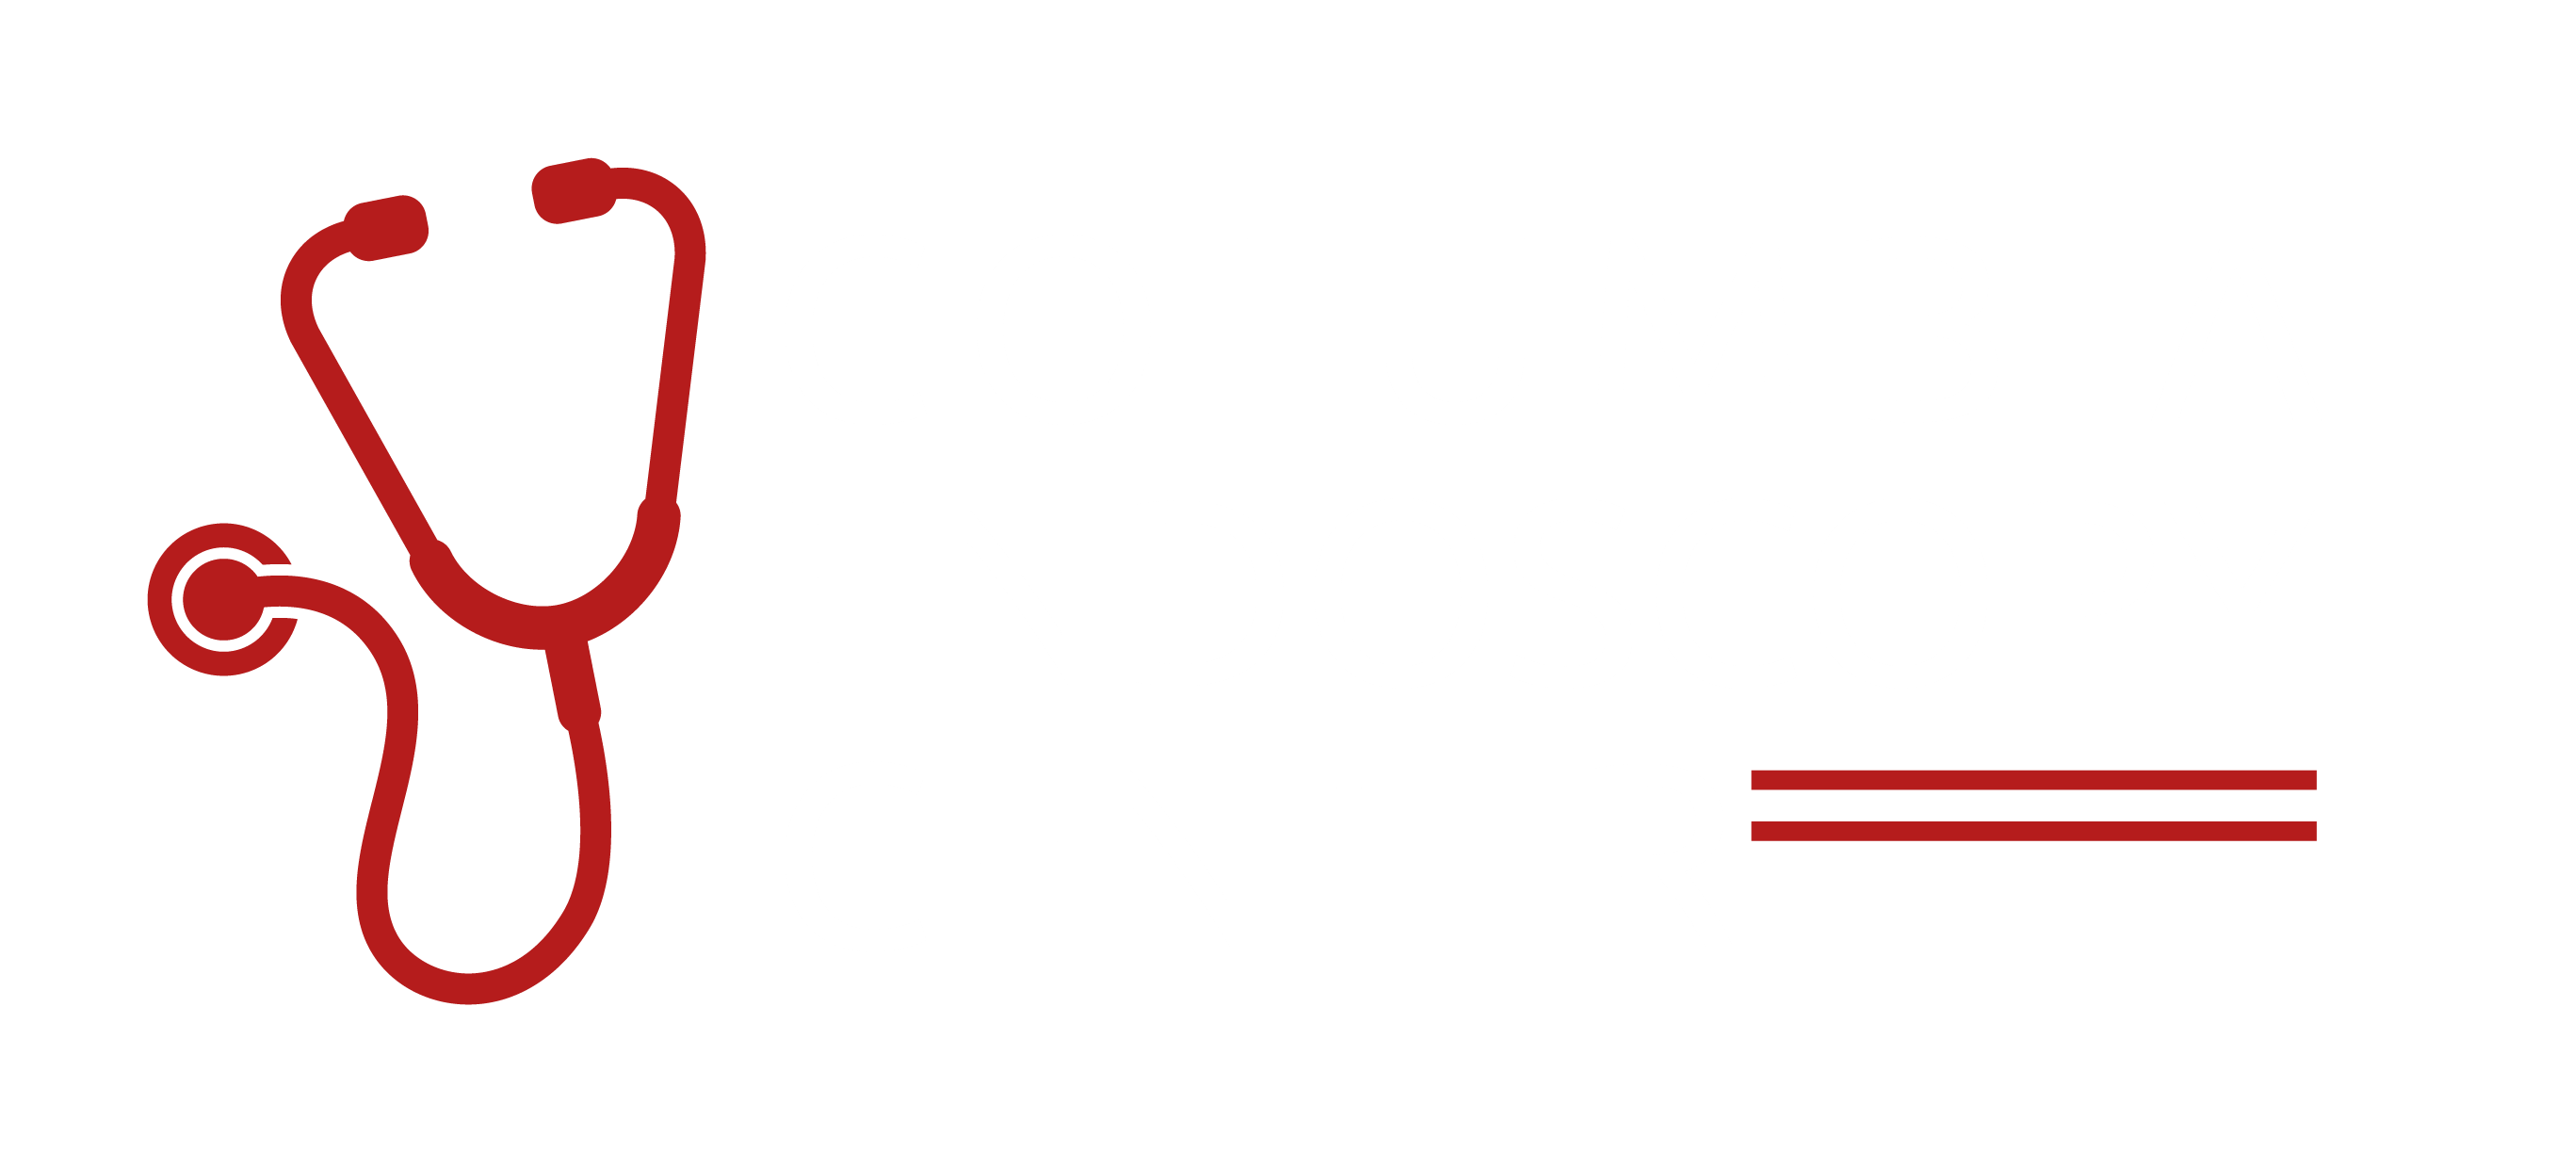 Columbia Endoscopy Center logo